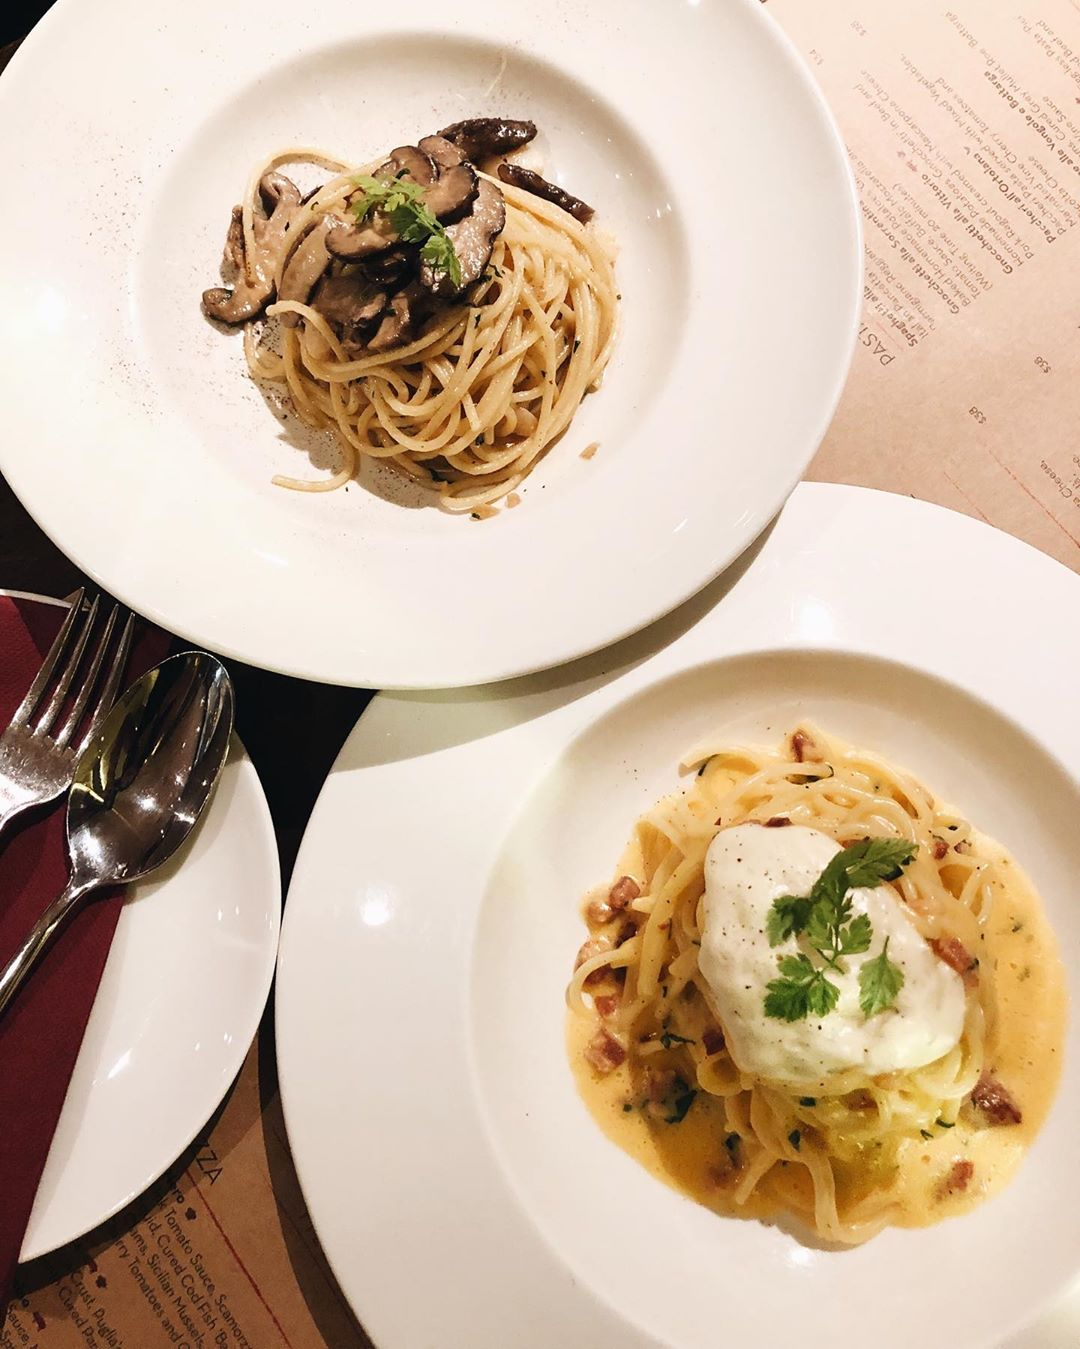 NTUC Union Members Can Now Redeem Food Deals Like 1-For-1 Mains, Free Truffle Fries & $1 Desserts This Sep fratelli pizzeria